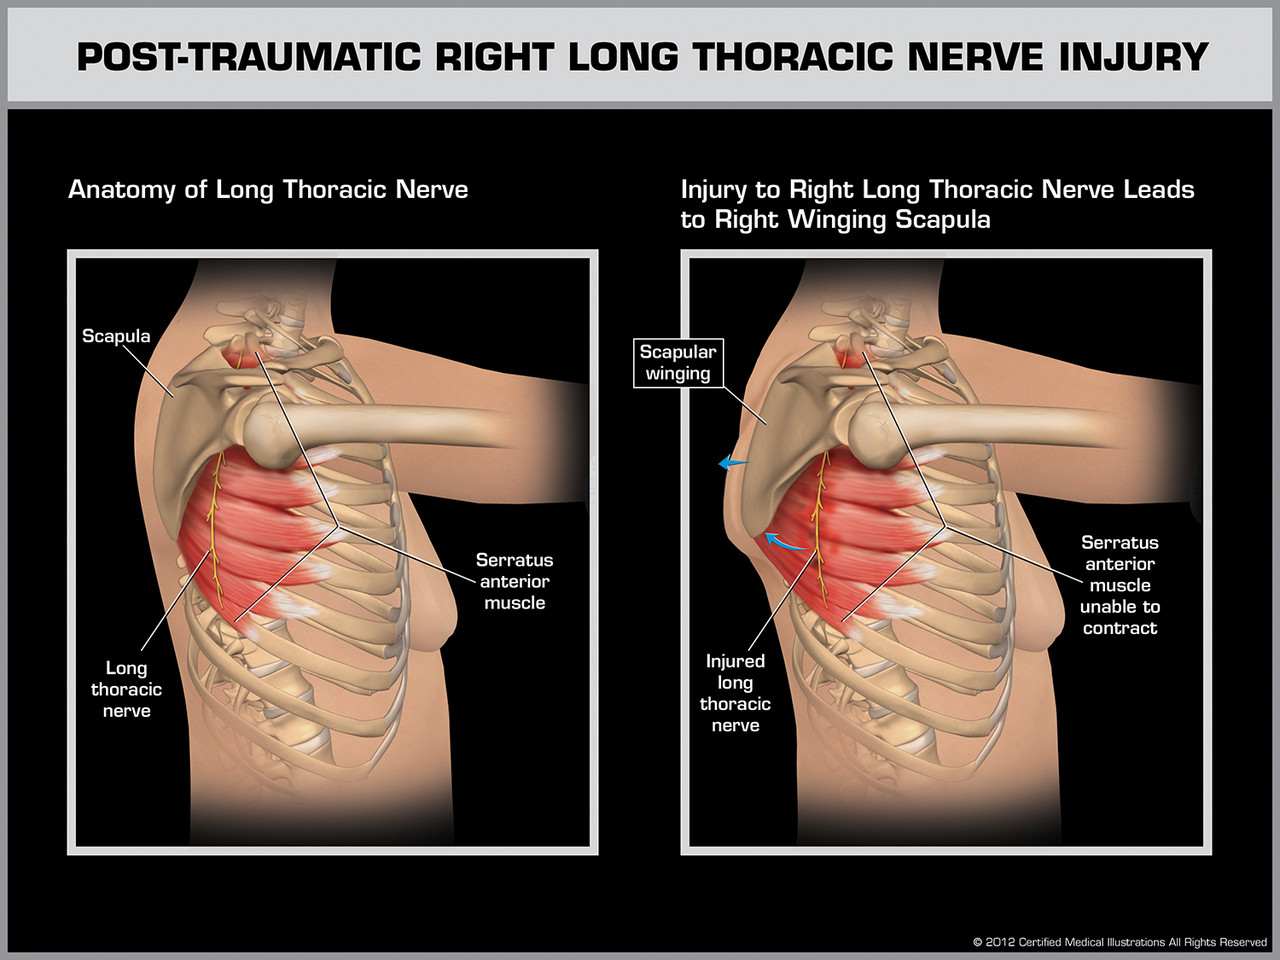 Post Traumatic Right Long Thoracic Nerve Injury